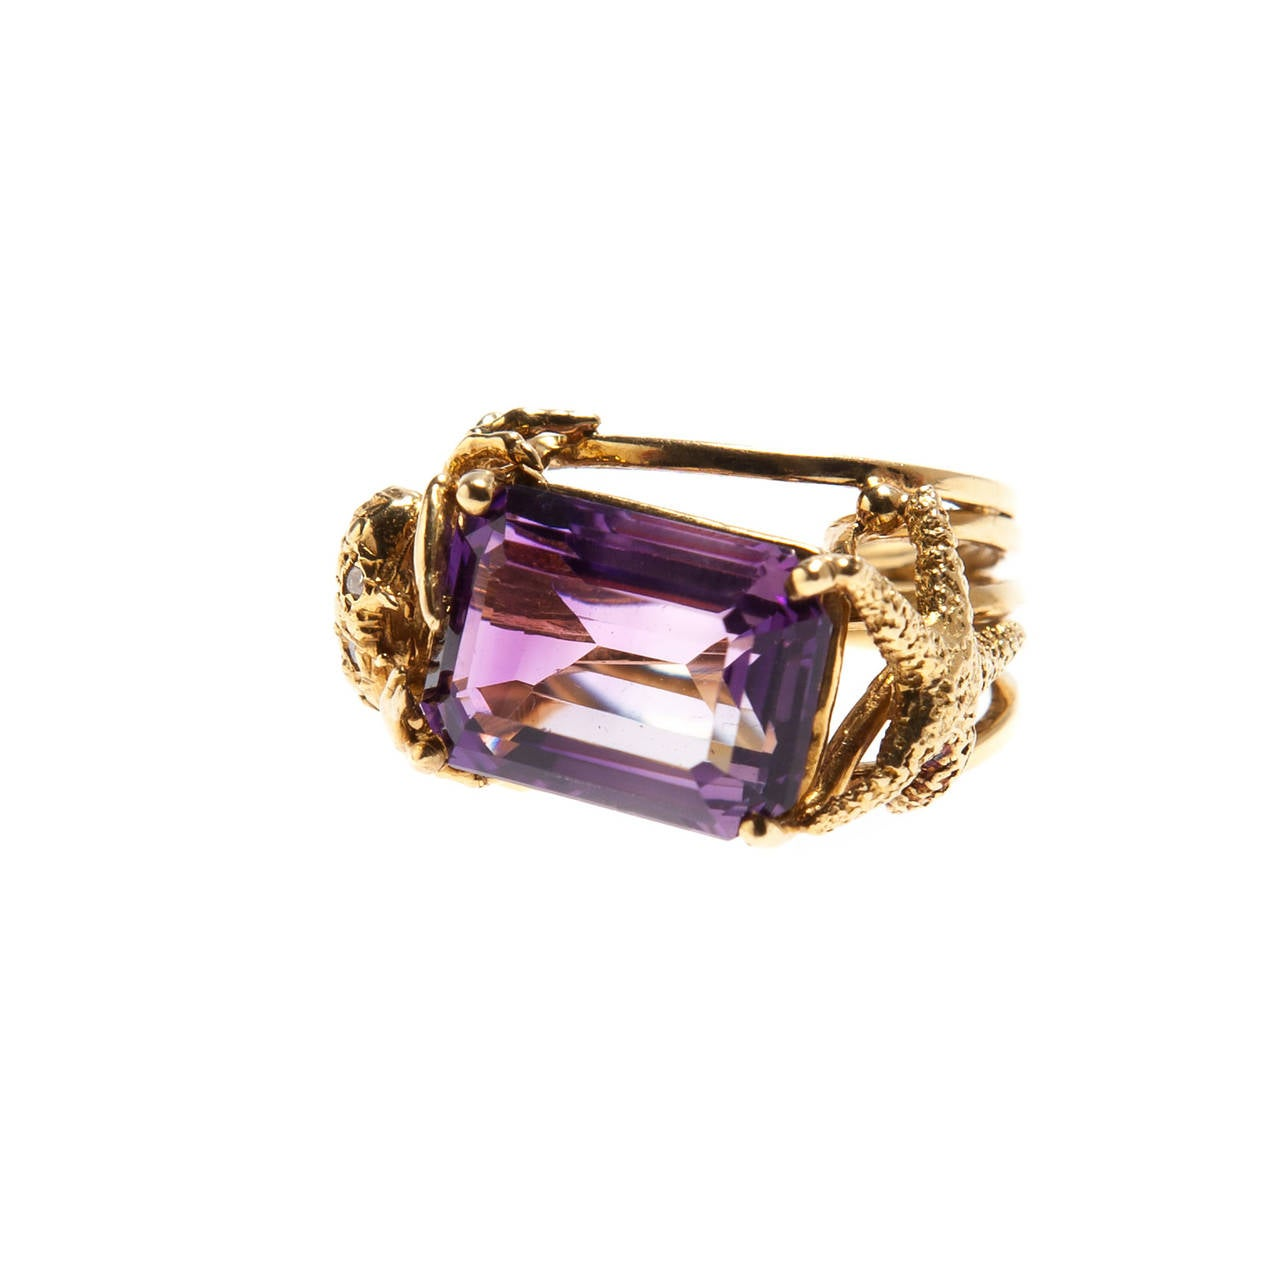 emerald cut amethyst gold ring for sale at 1stdibs